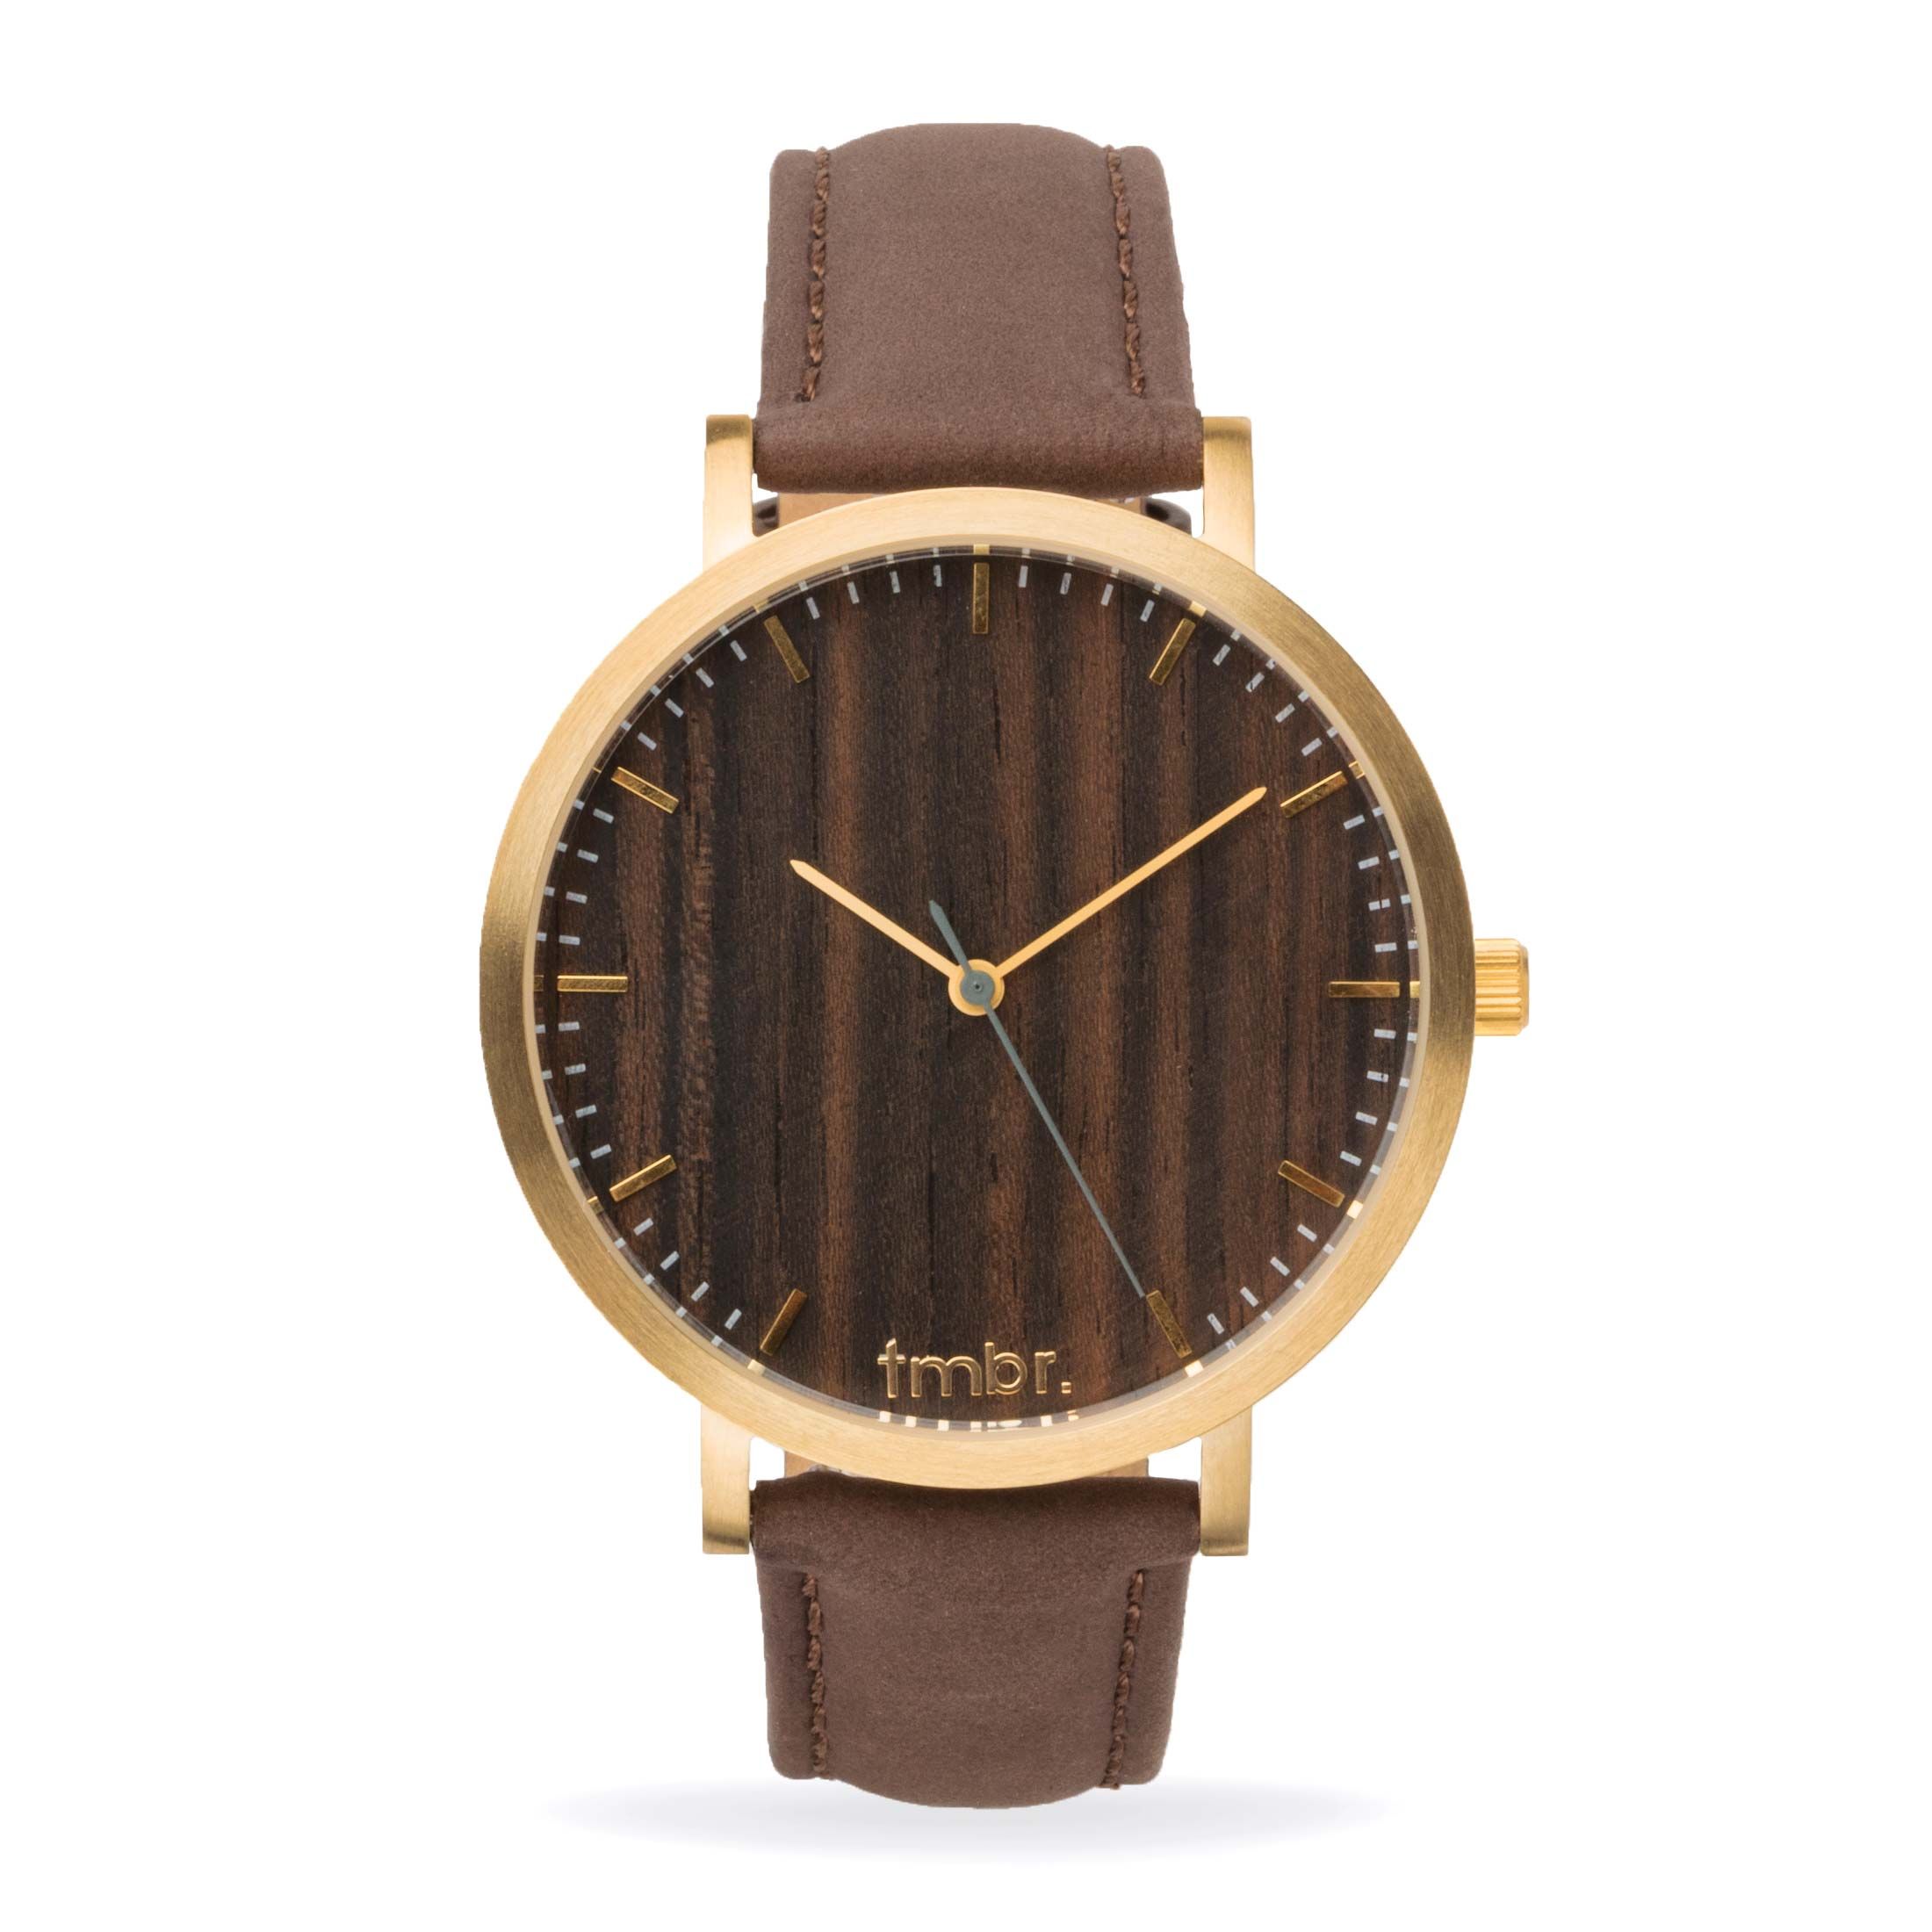 laser wooden quartz your is logo wood welcome item com custom sunglasses from bamboo odm in oem box engrave aliexpress watches fee gift on